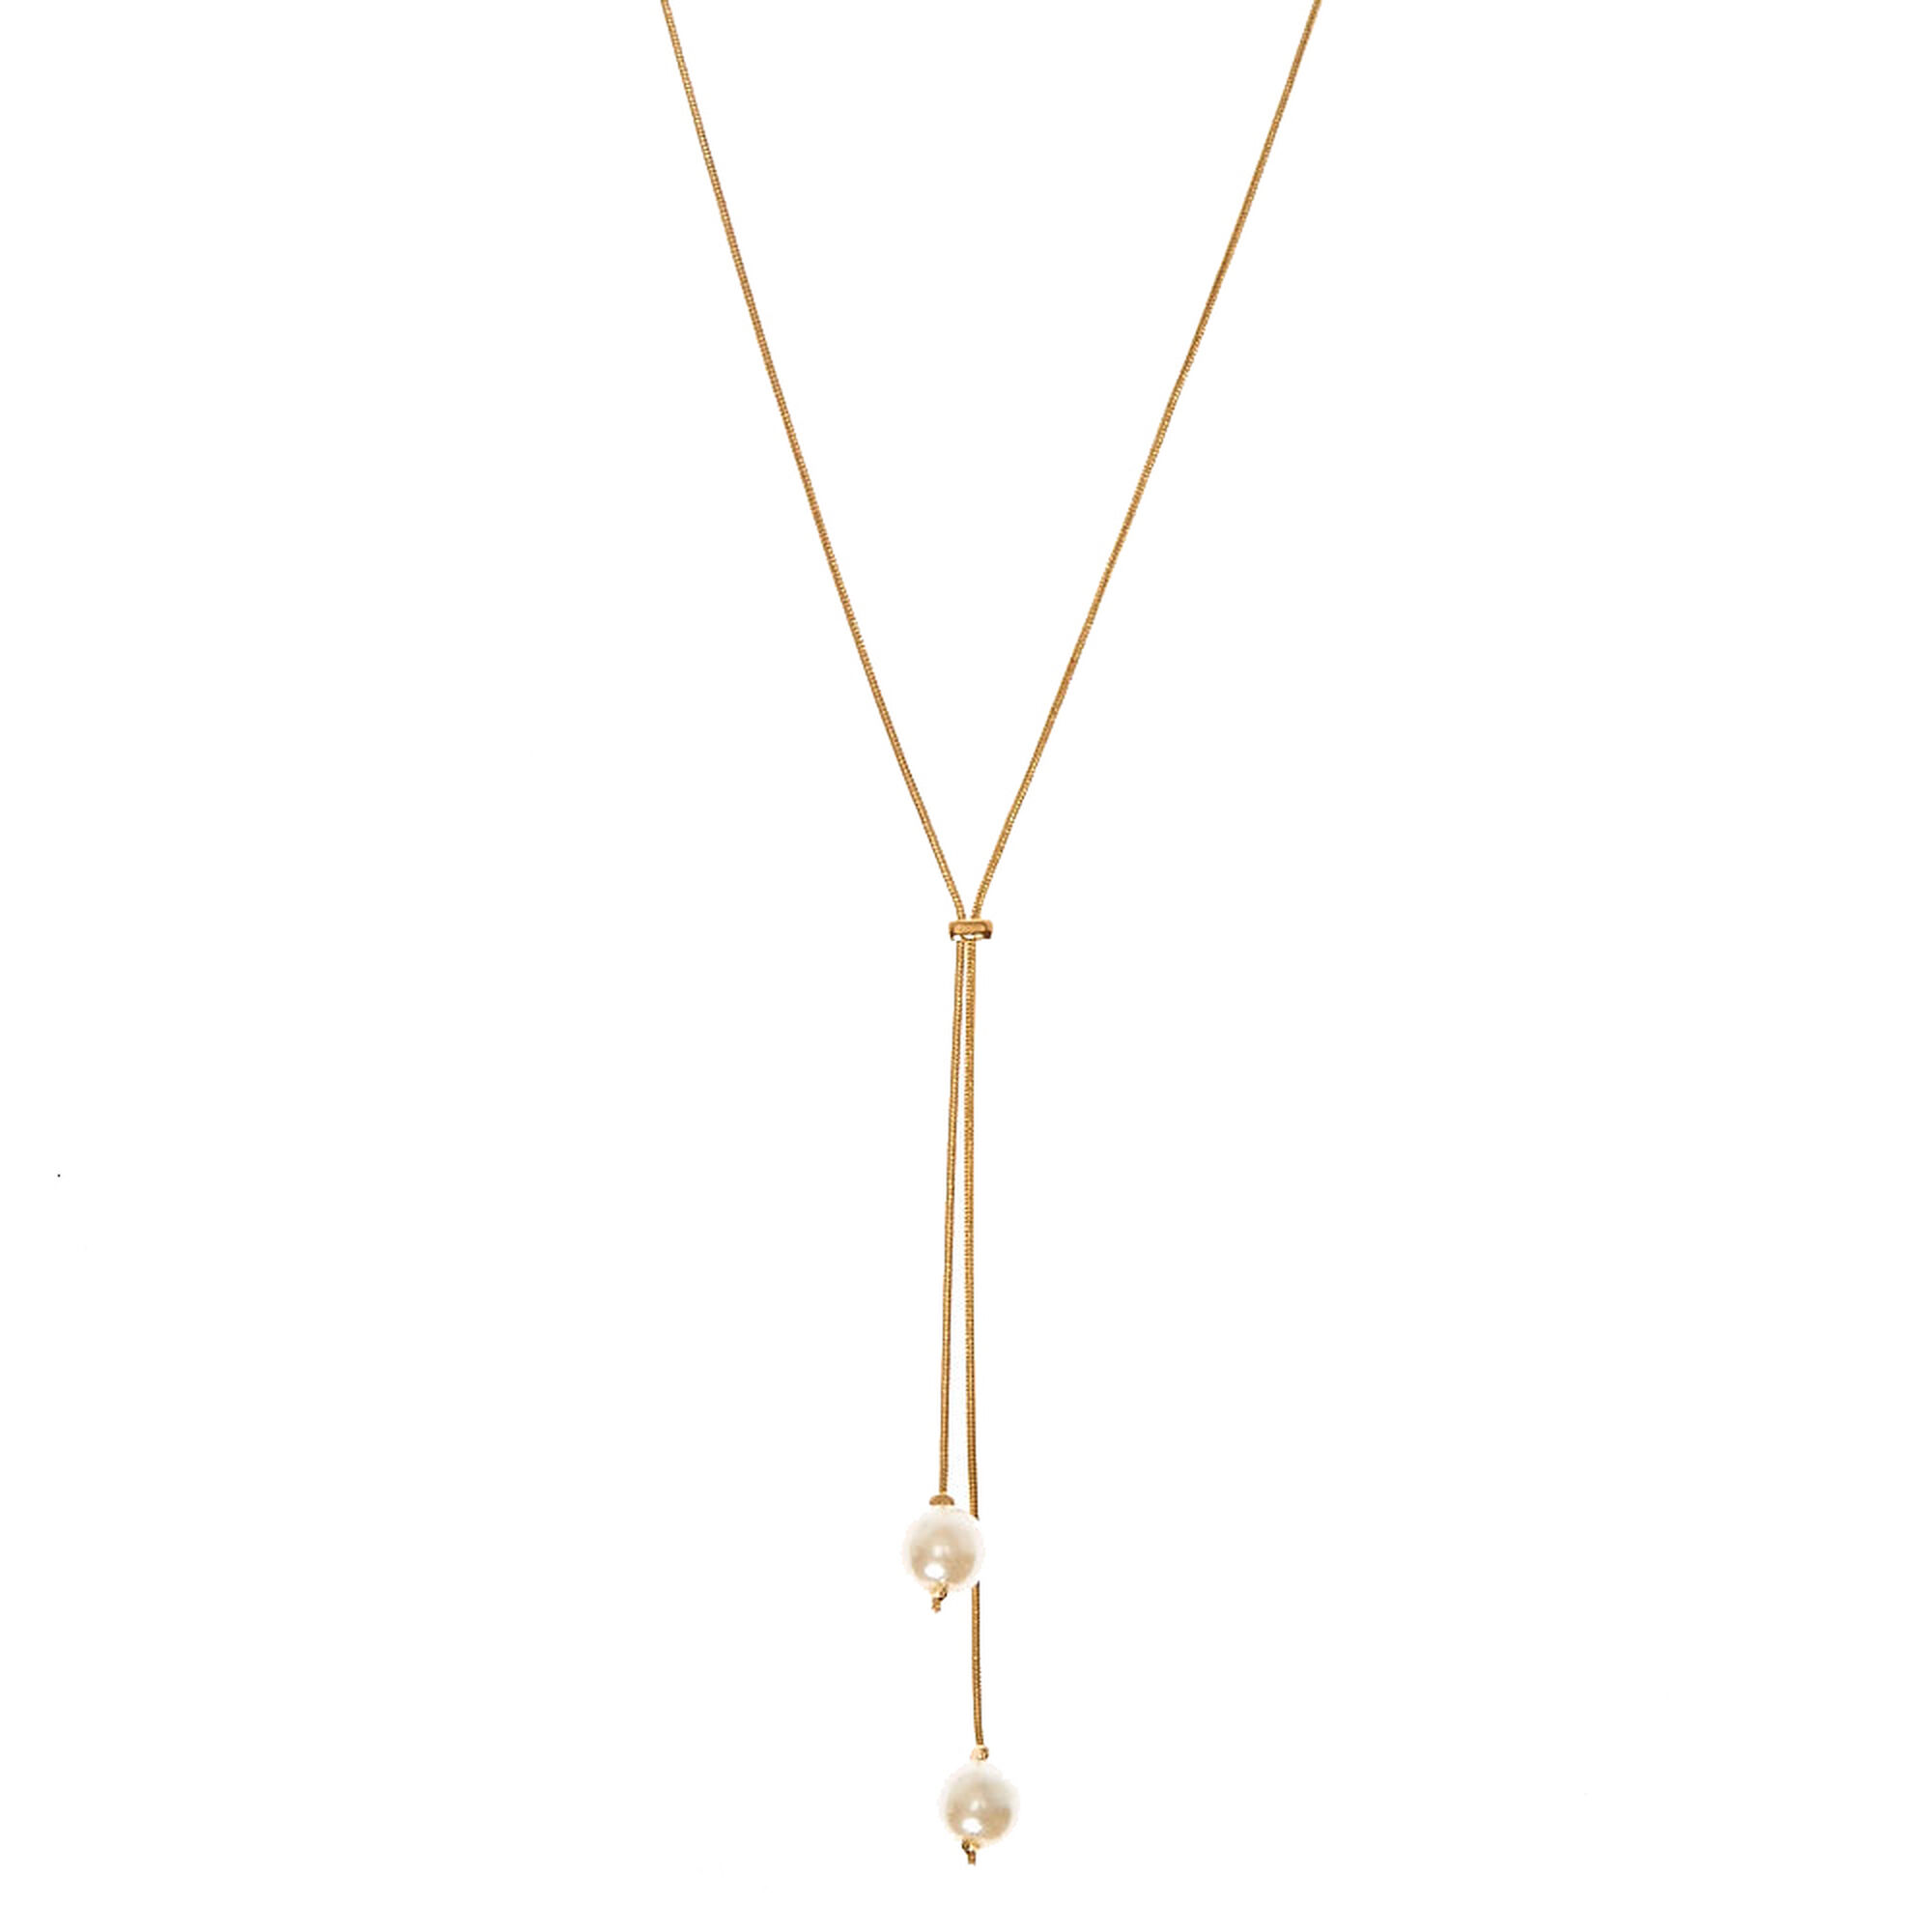 image pure product exclusive necklace womens women thin s products emporium gold